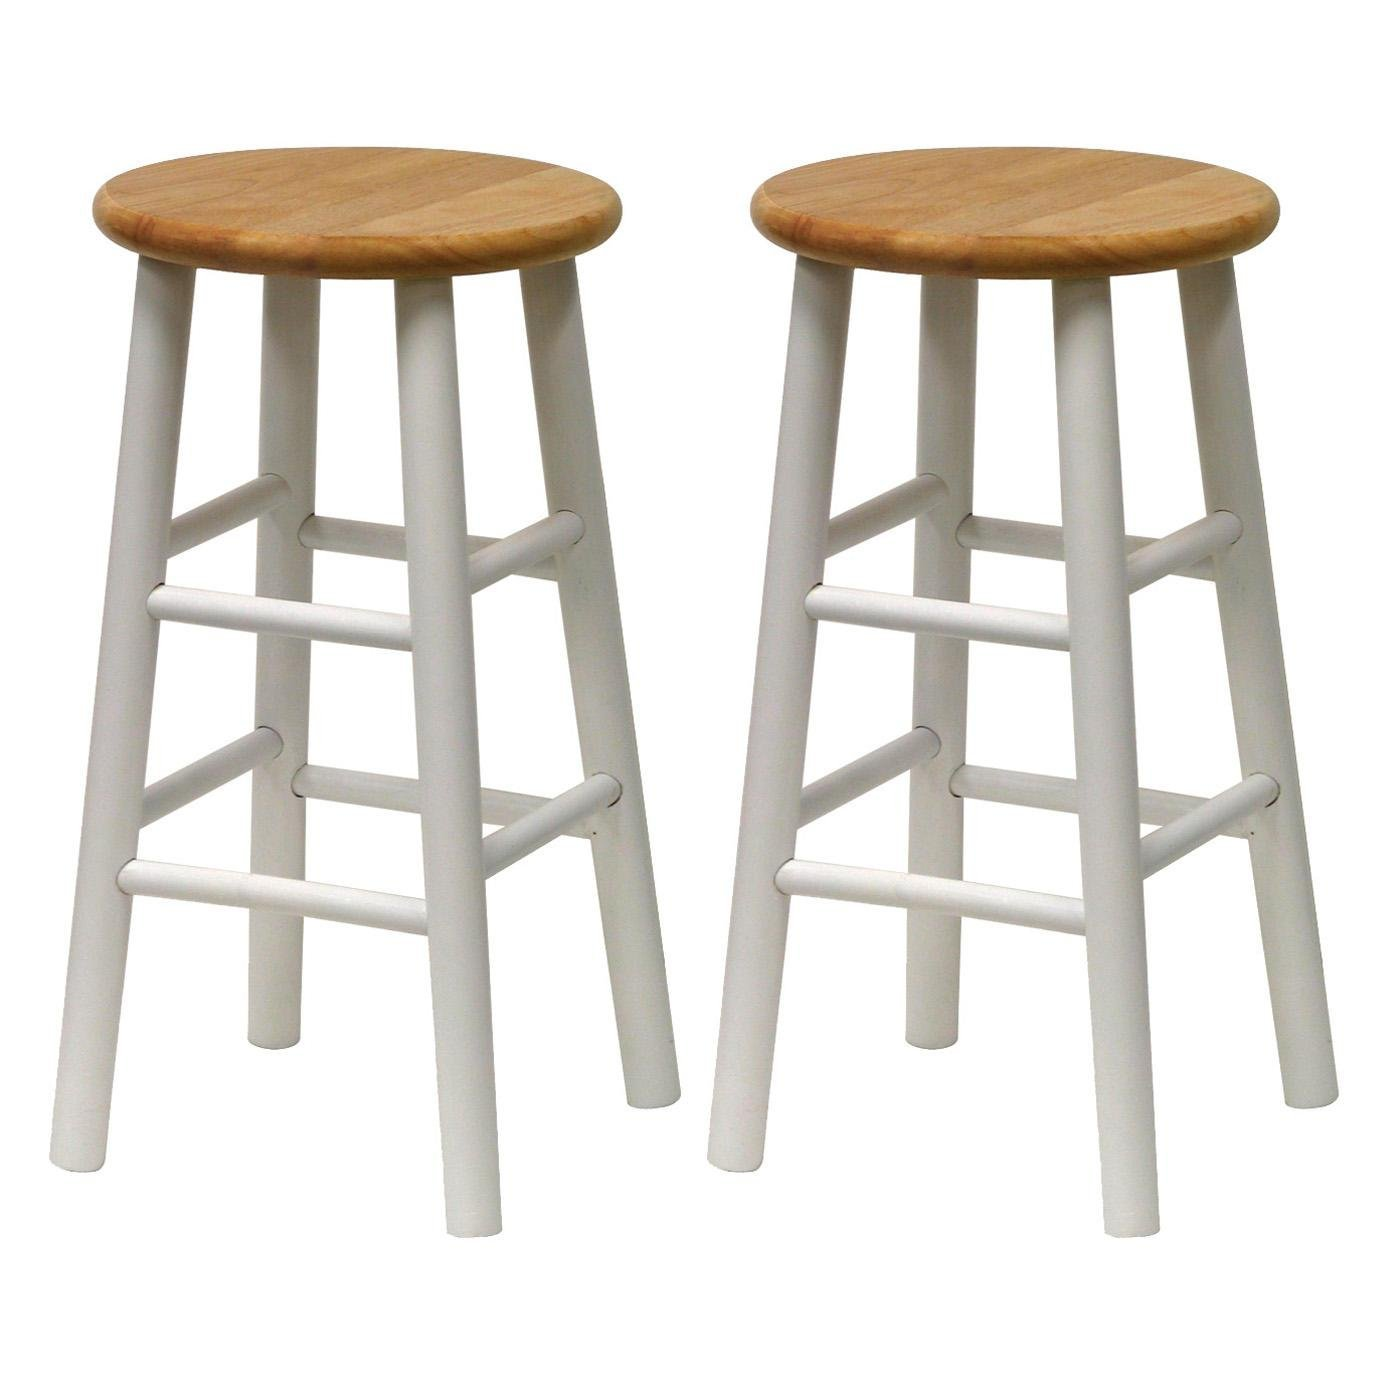 Winsome Wood Bar Stool (Image 10 of 10)